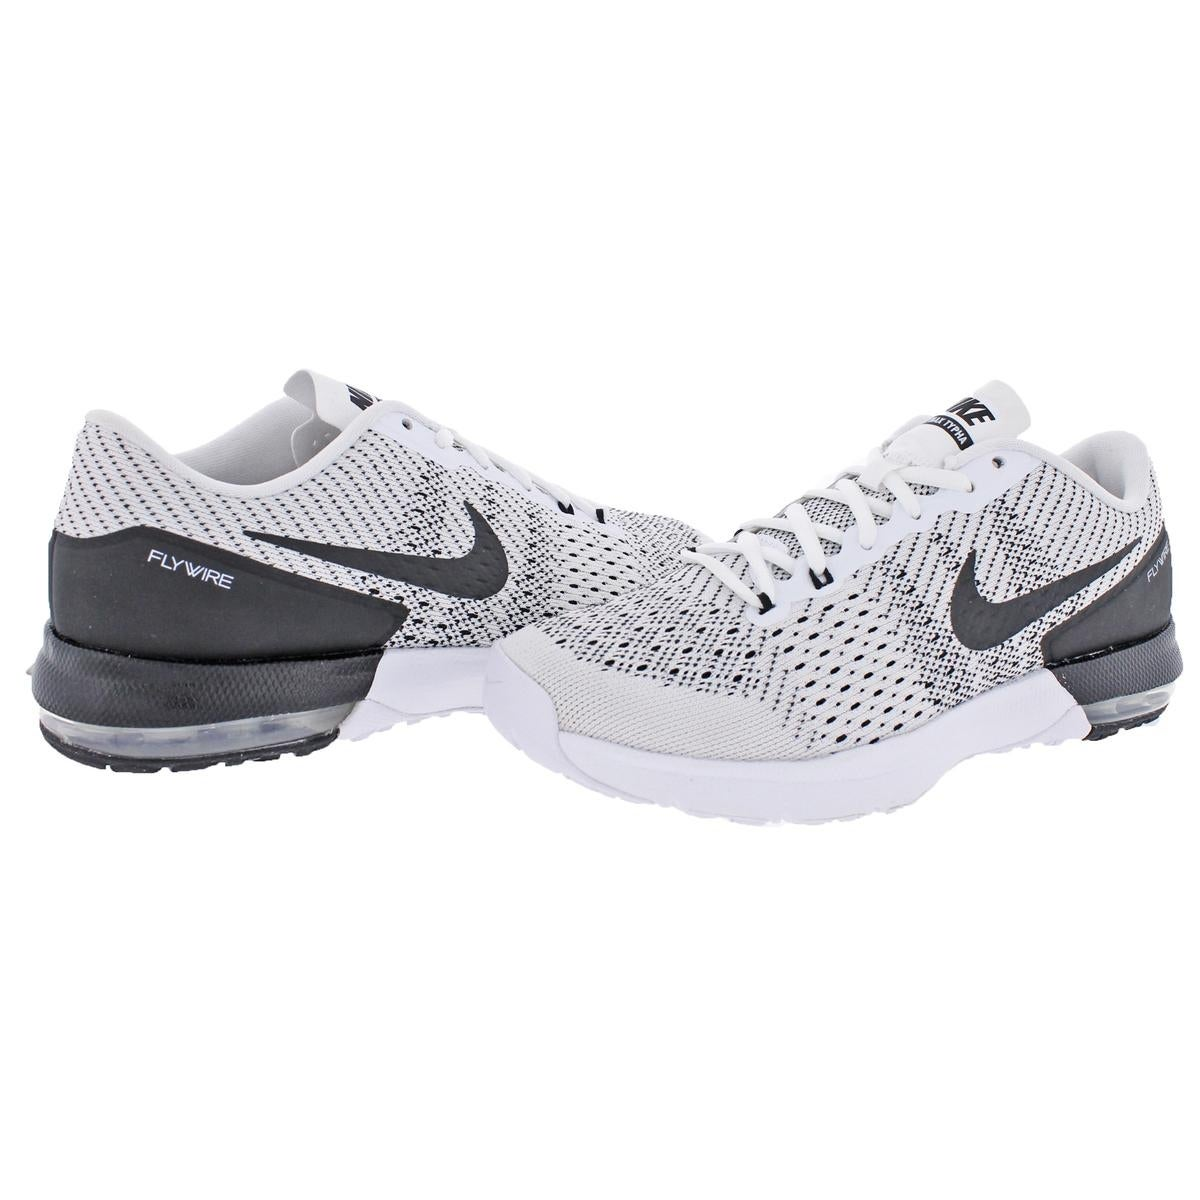 low priced 477c0 7791e Shop Nike Mens Air Max Typha Trainers Training Flywire - Free Shipping On  Orders Over  45 - Overstock - 21942194